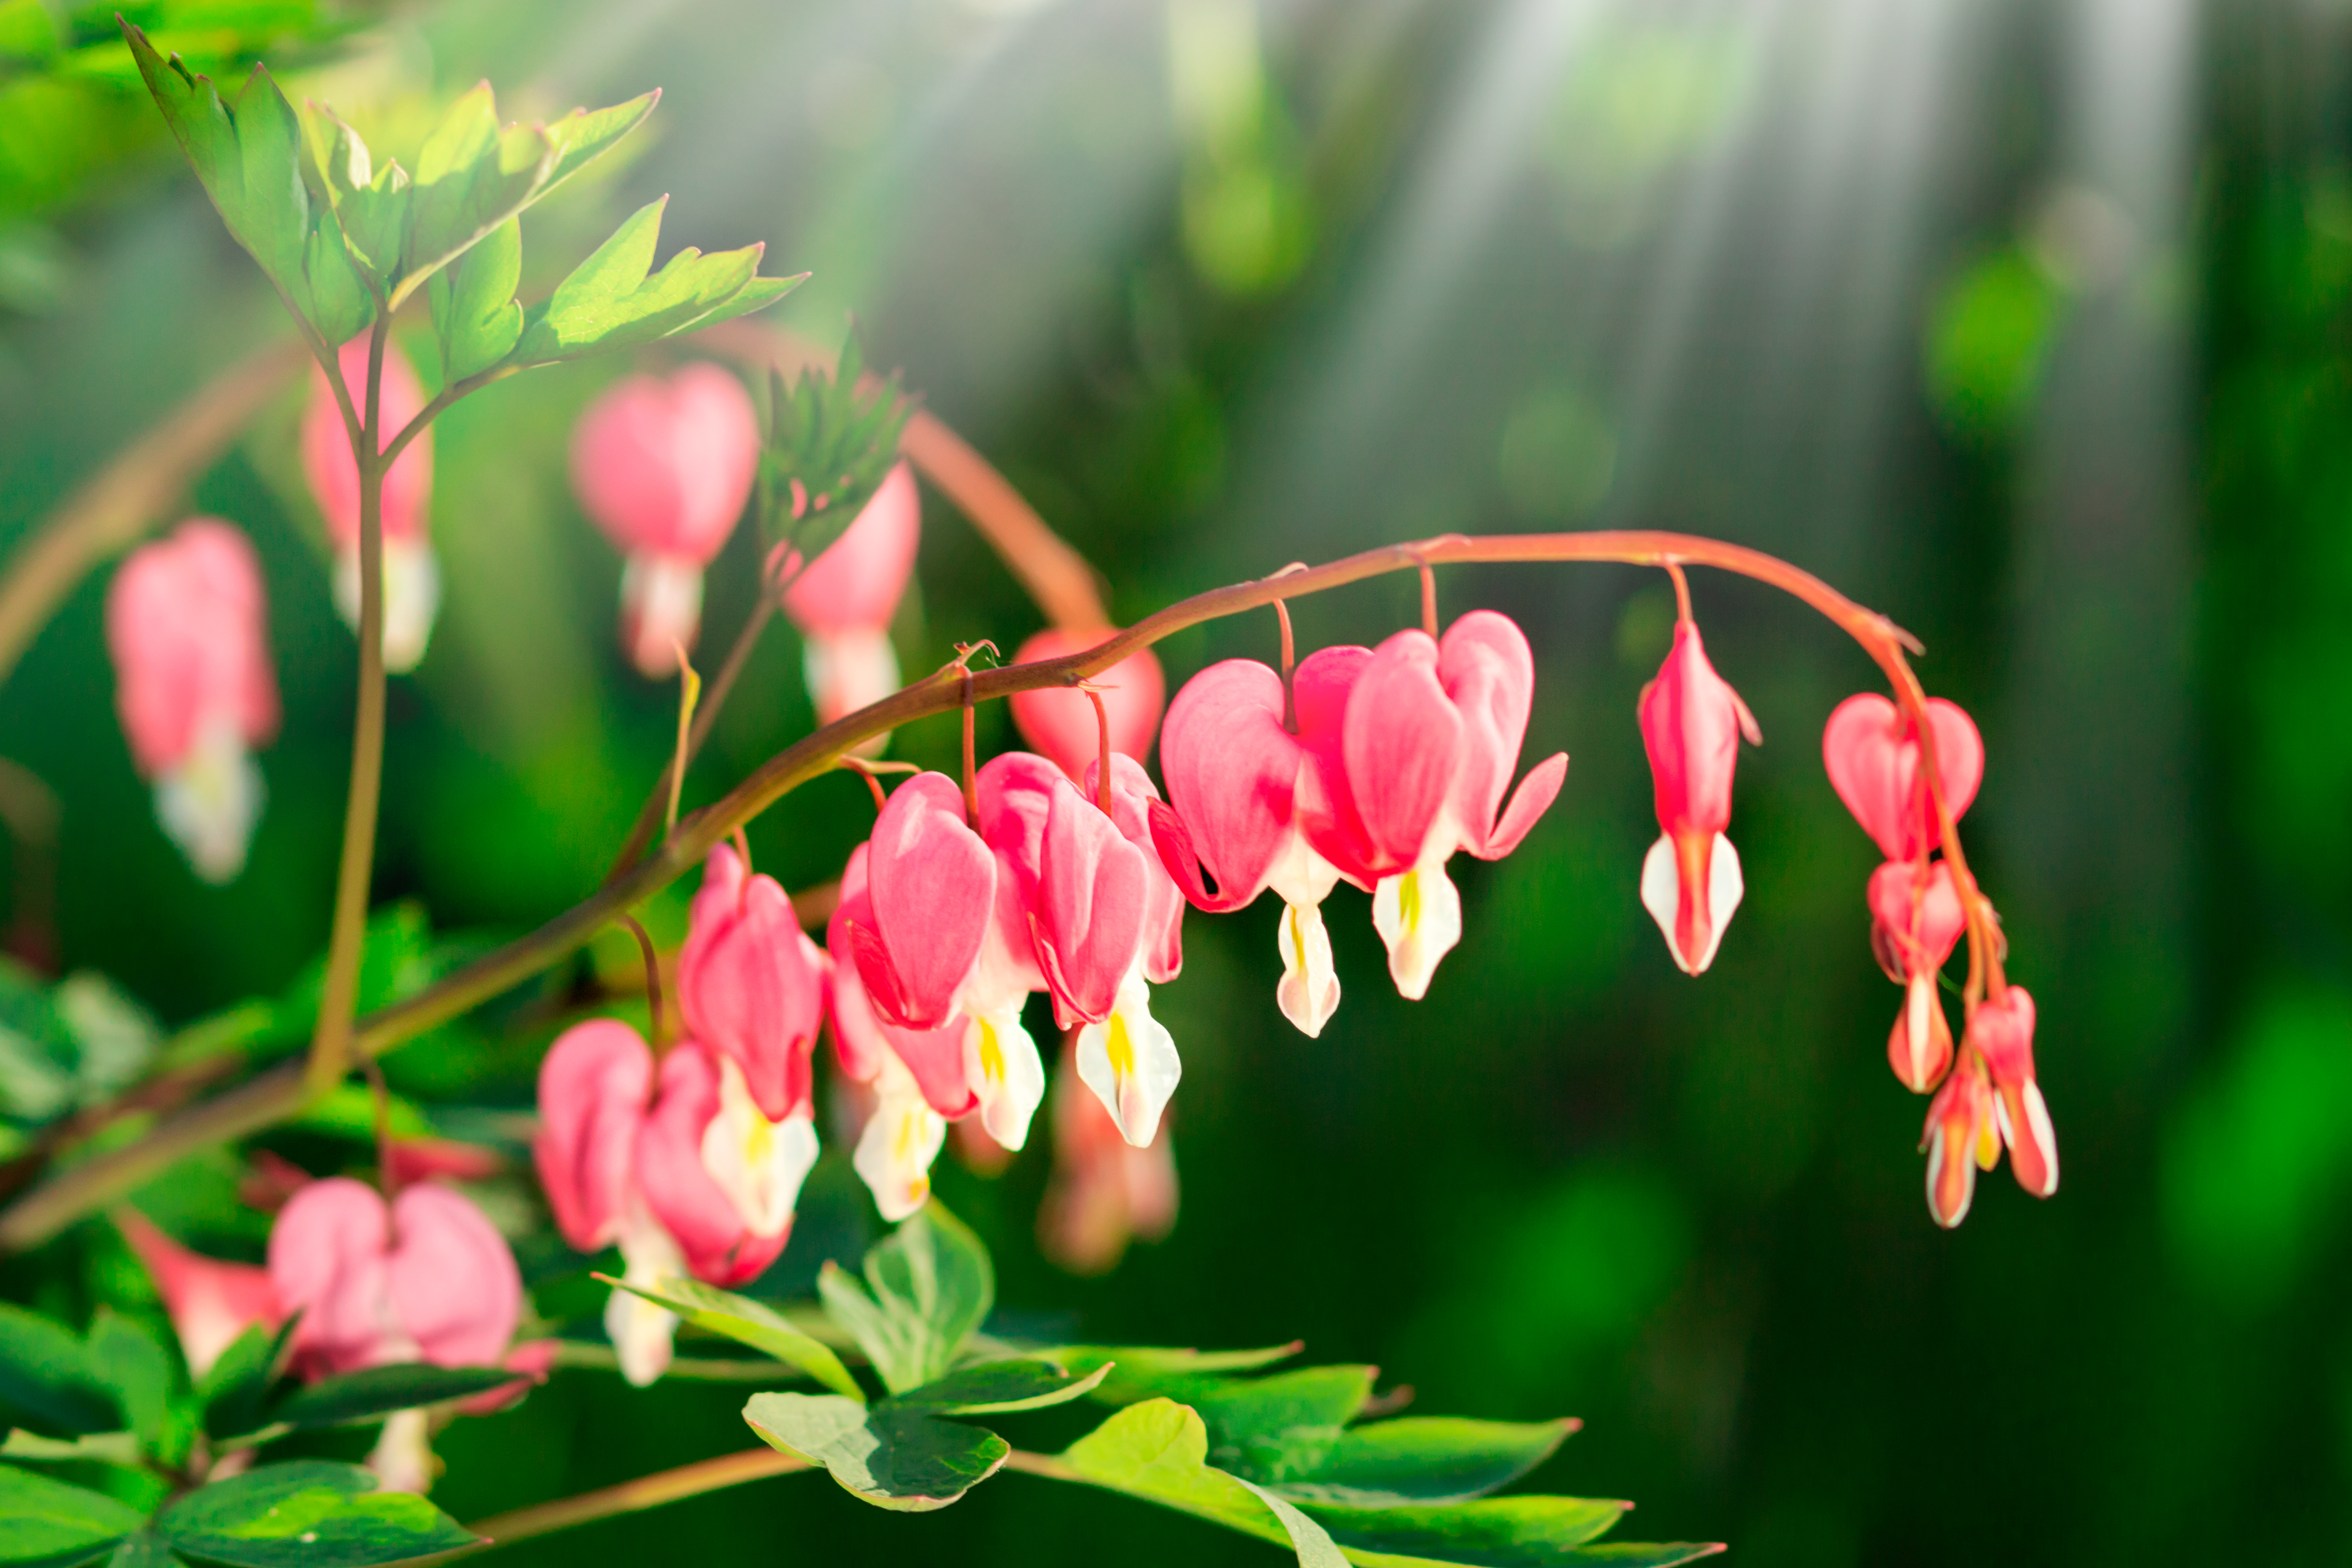 Life Cycle of the Bleeding Heart Plant | Home Guides | SF Gate